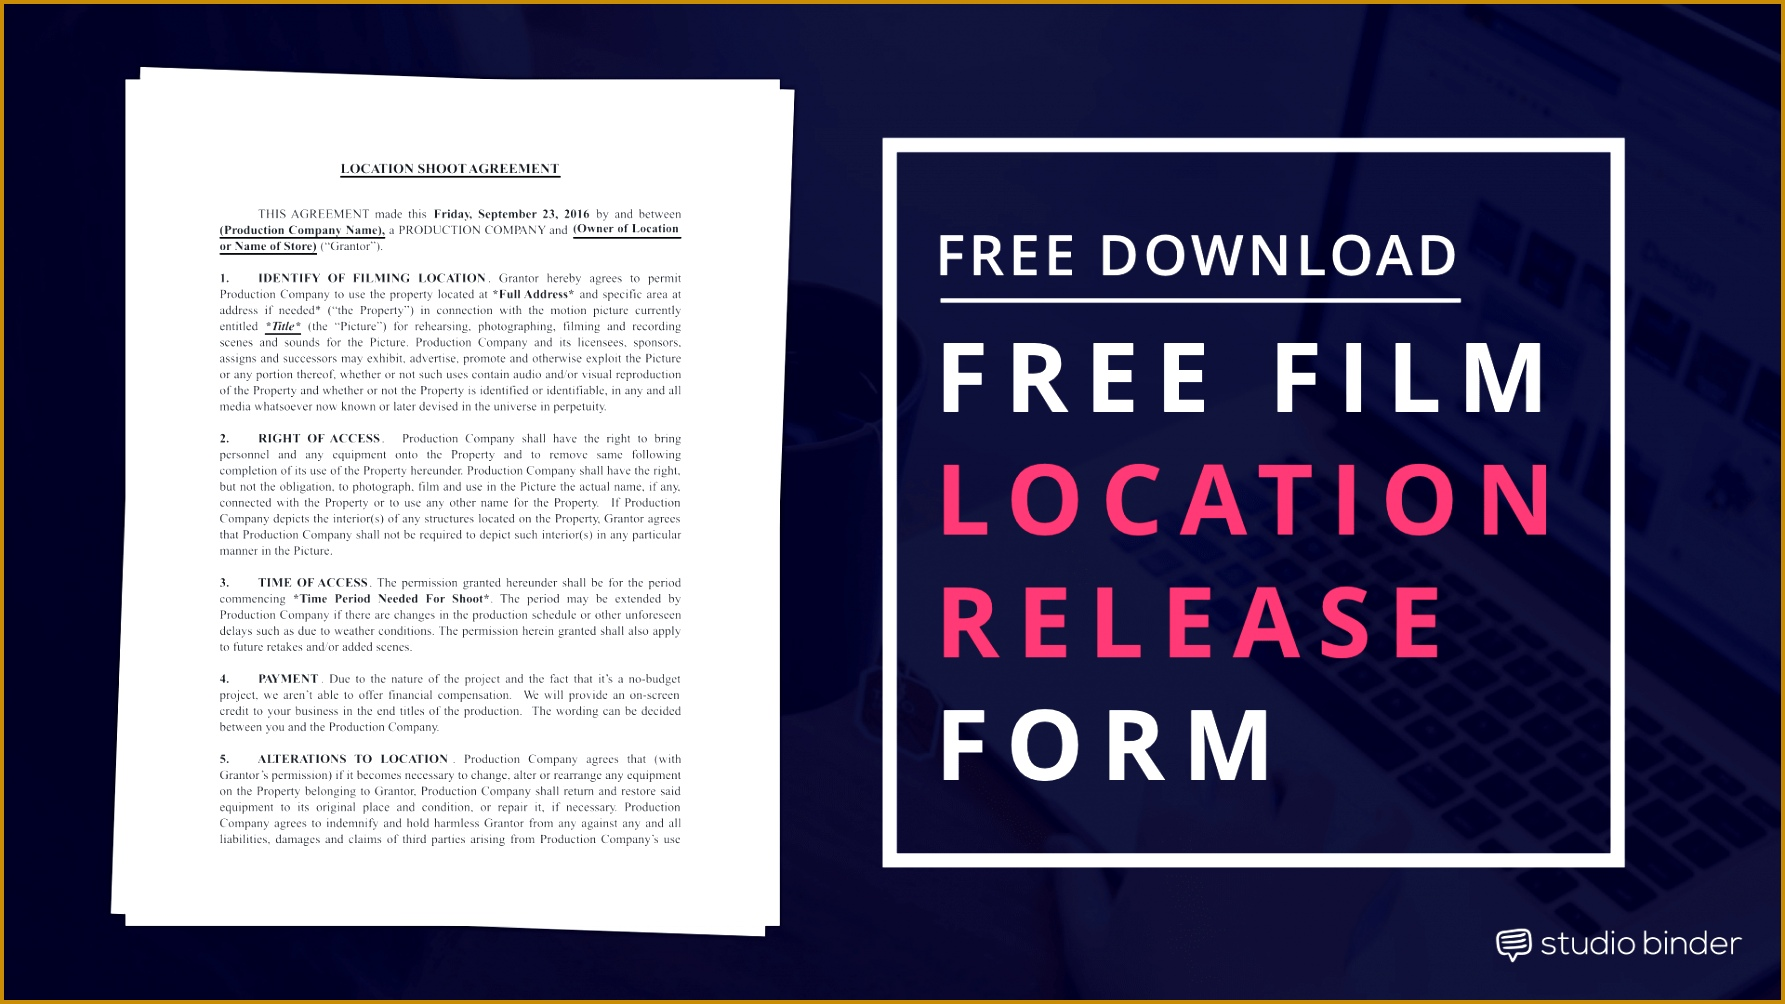 Download a Location Release Form Template FREE 10041785